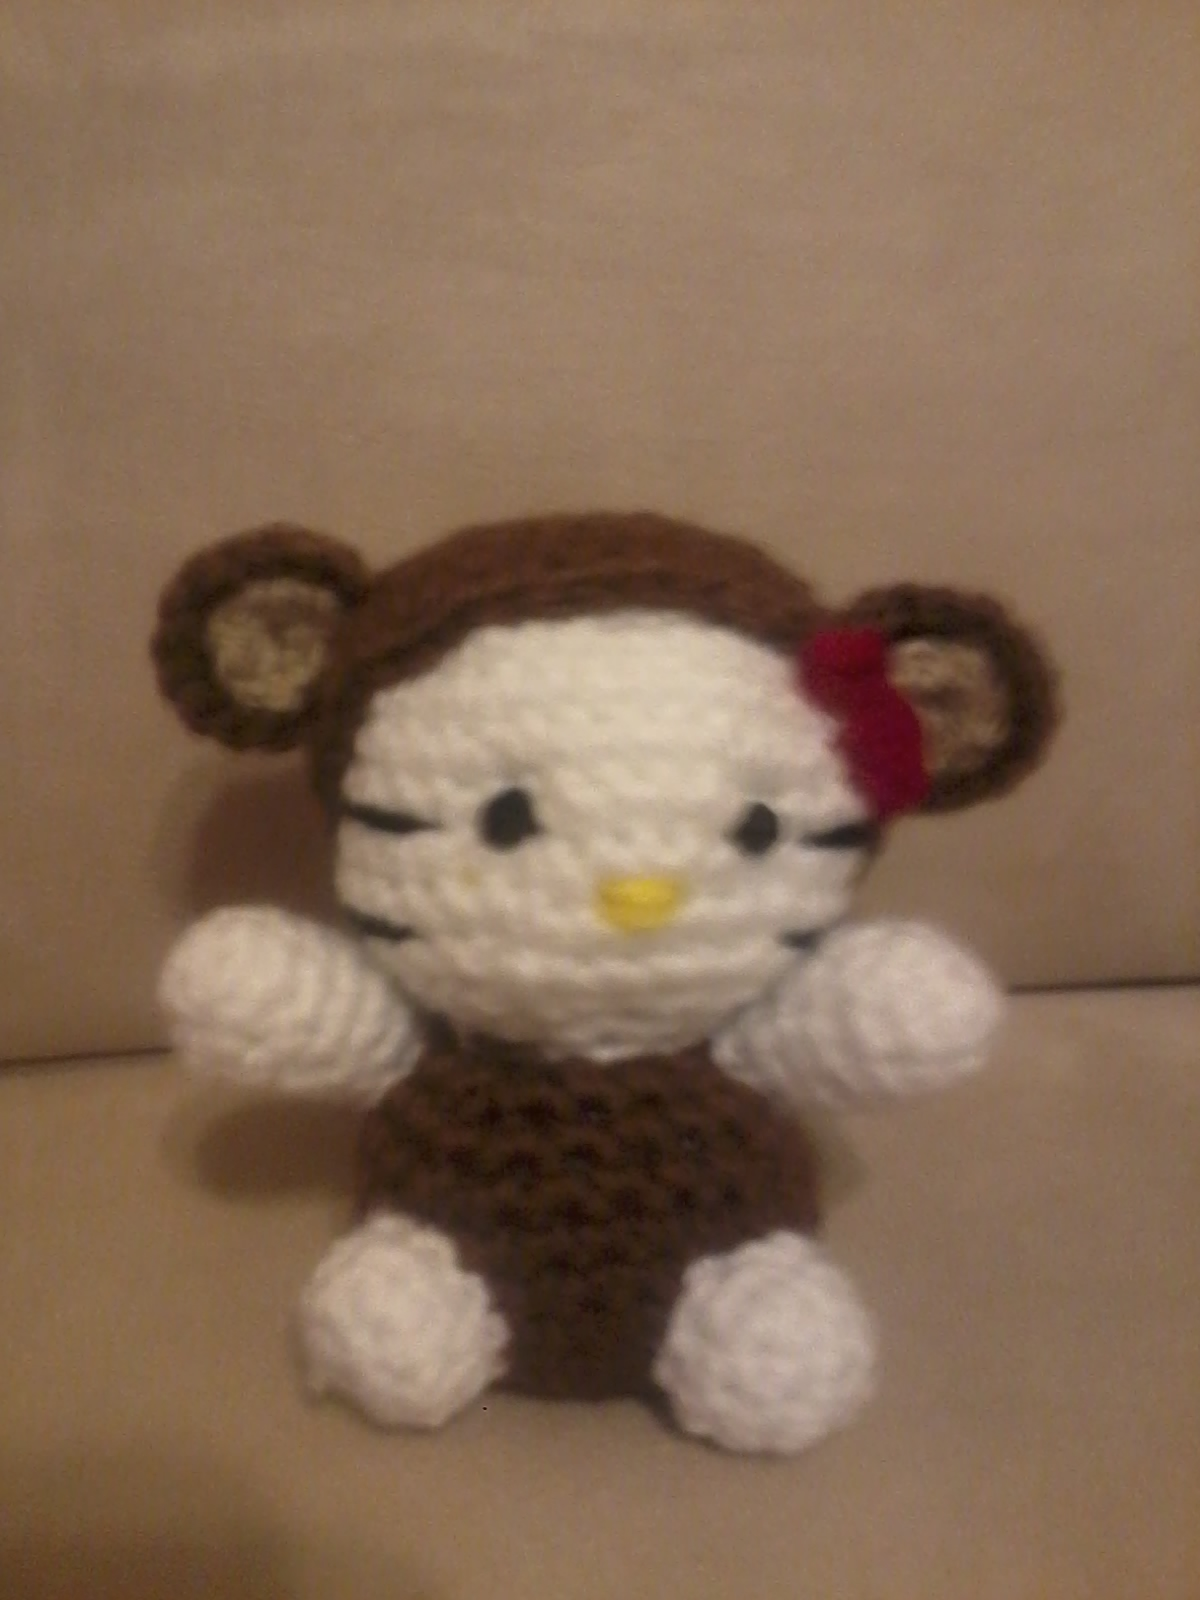 NOVEDADES JENPOALI: PATRON MINI HELLO KITTY CHANGO AMIGURUMI